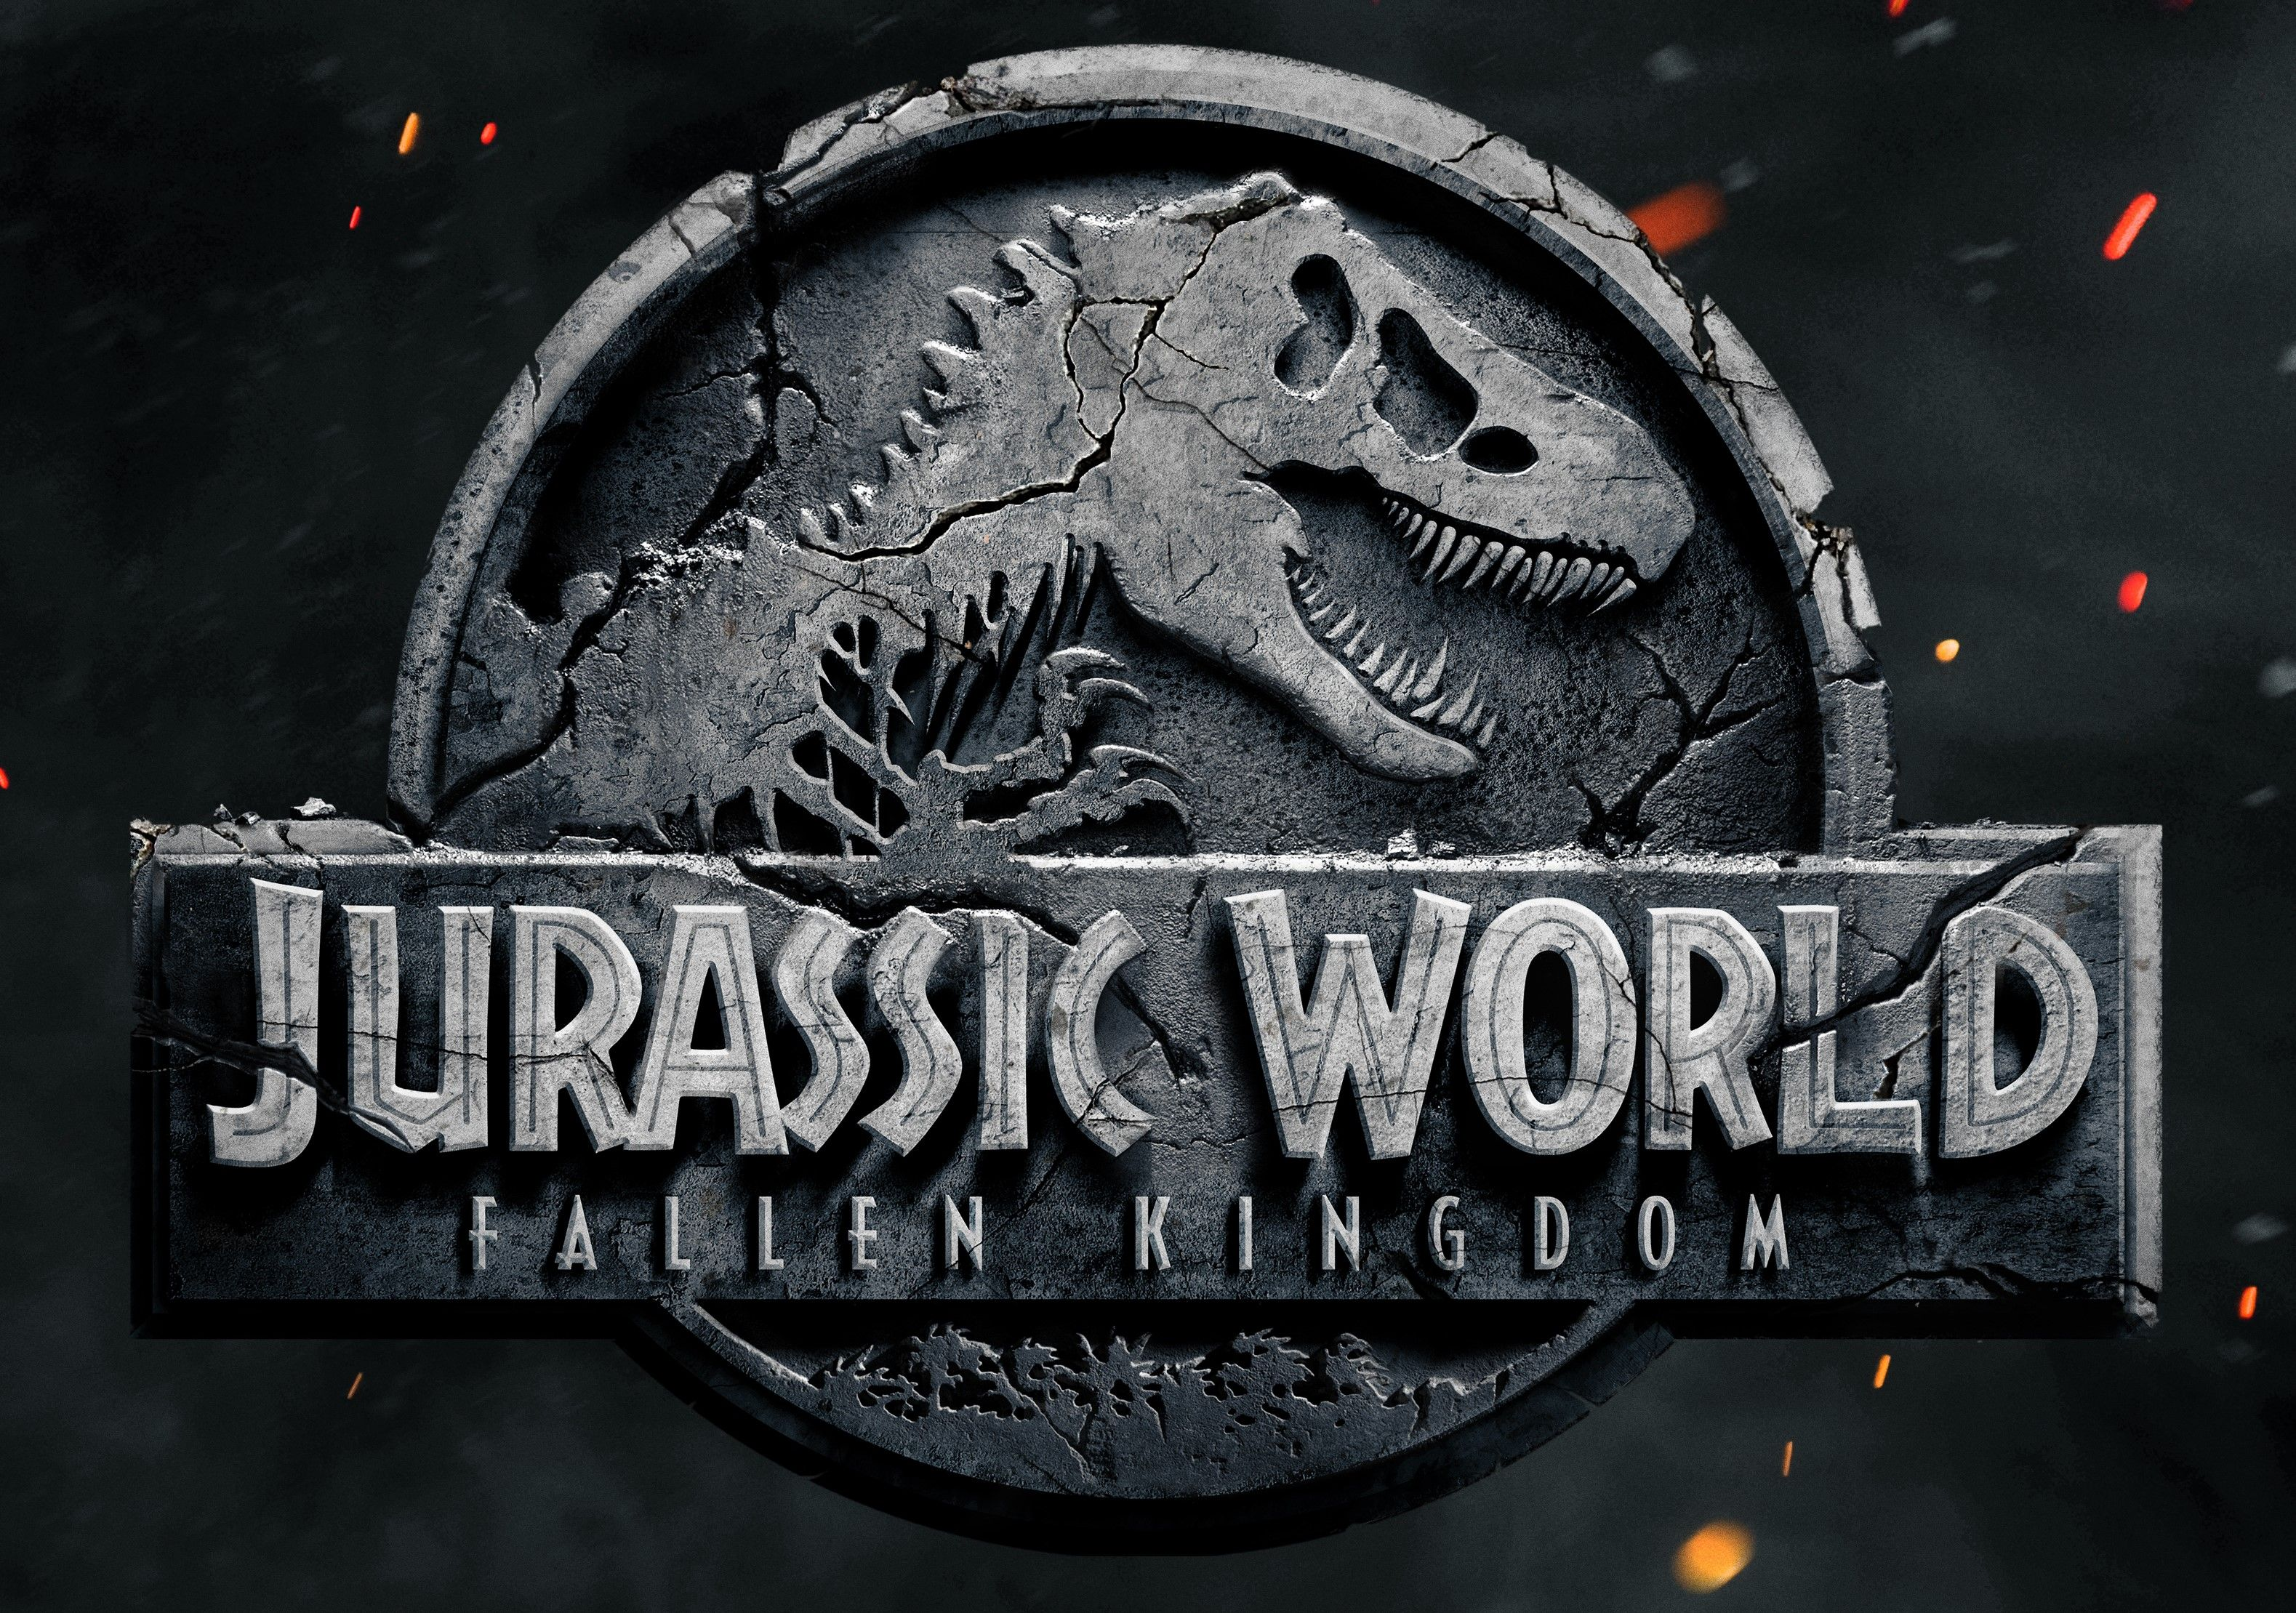 Jurassic World 2 Is Officially Titled Fallen Kingdom Jurassic Outpost Jurassic World Falling Kingdoms New Jurassic World